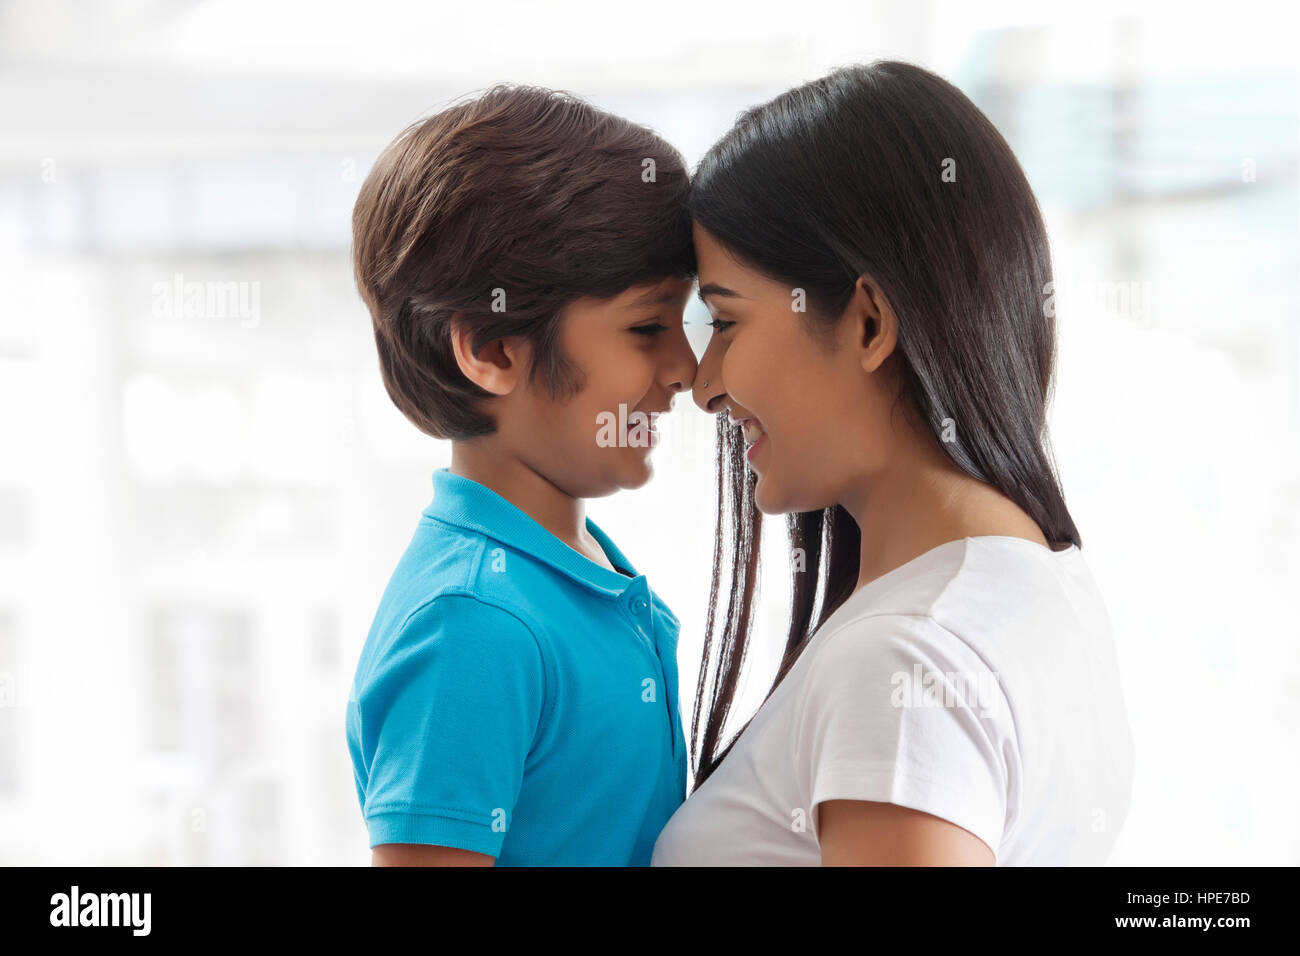 Mother and son rubbing noses together - Stock Image